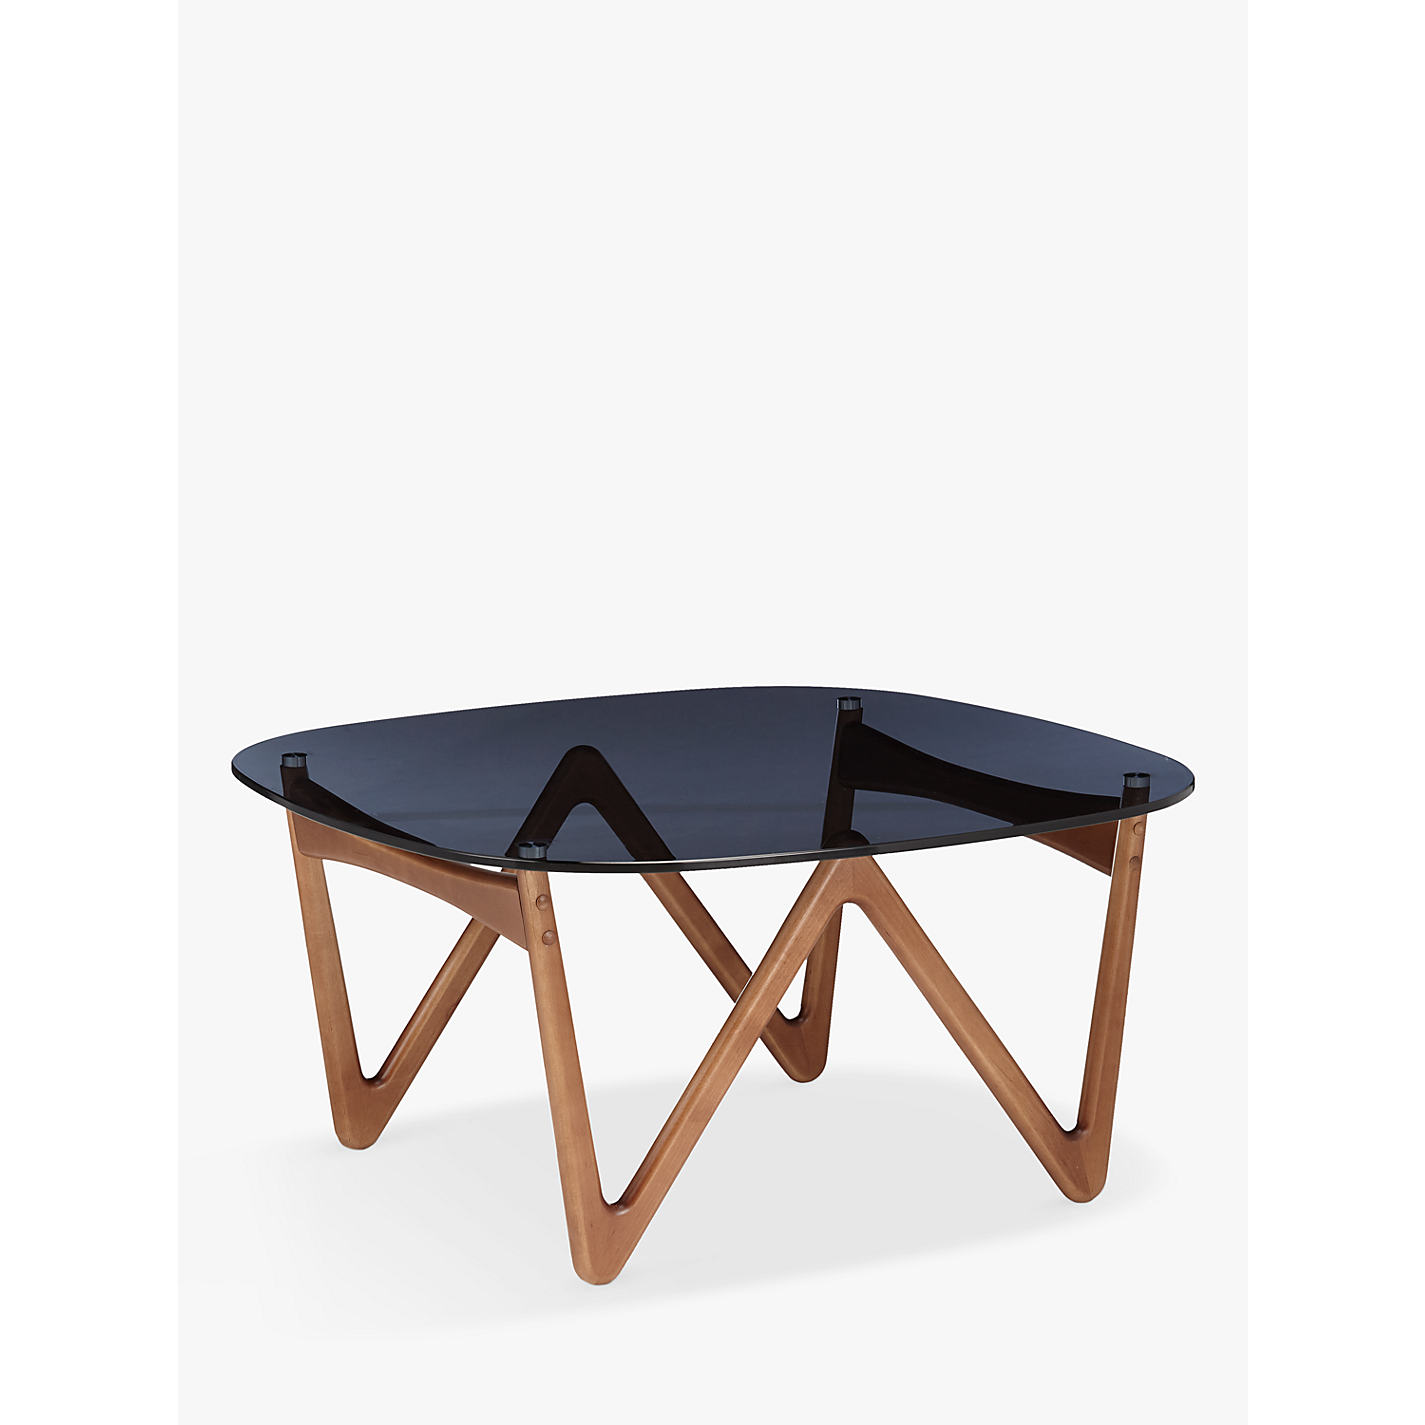 Buy John Lewis Soren Coffee Table Online At Johnlewis John Lewis Living Room Tables: coffee table buy